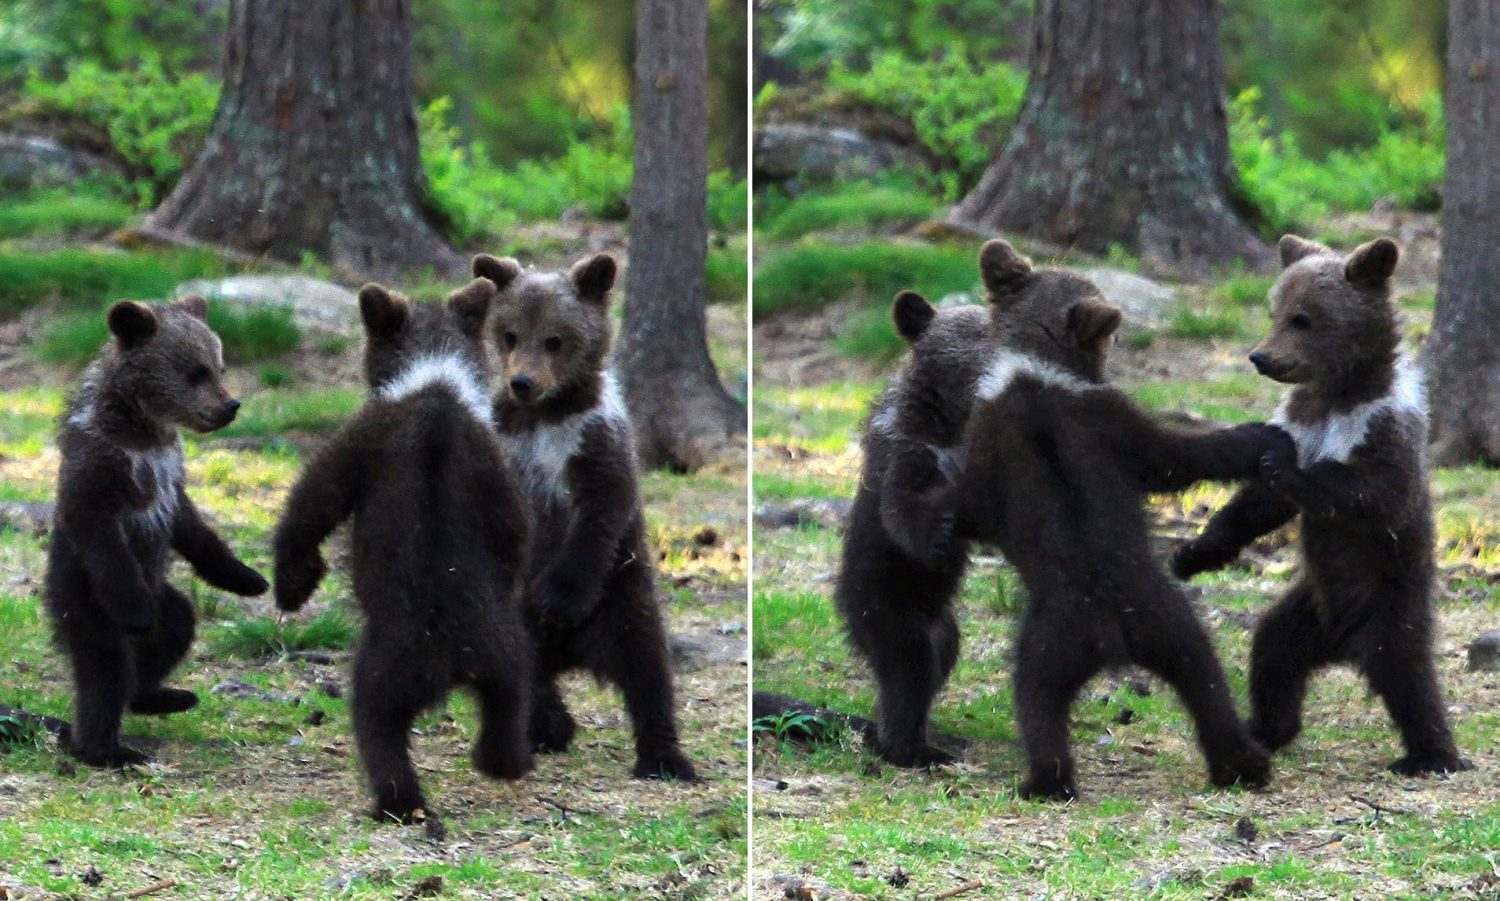 teacher stumbles upon baby bears 'dancing' in finland forest, thinks he's imagining it